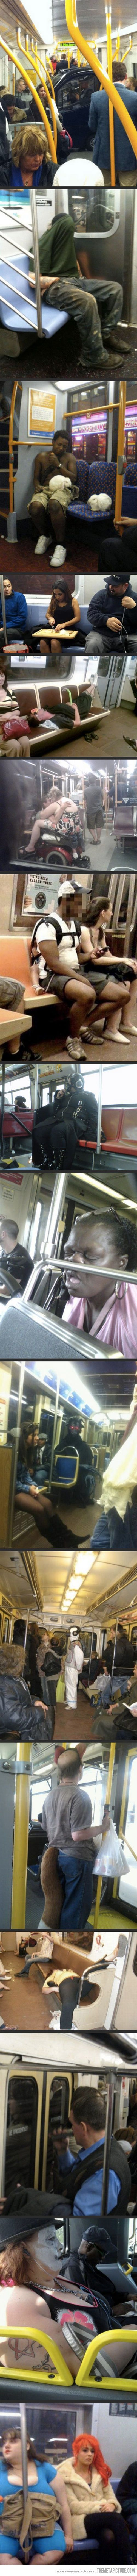 Things you'll only see in public transportation